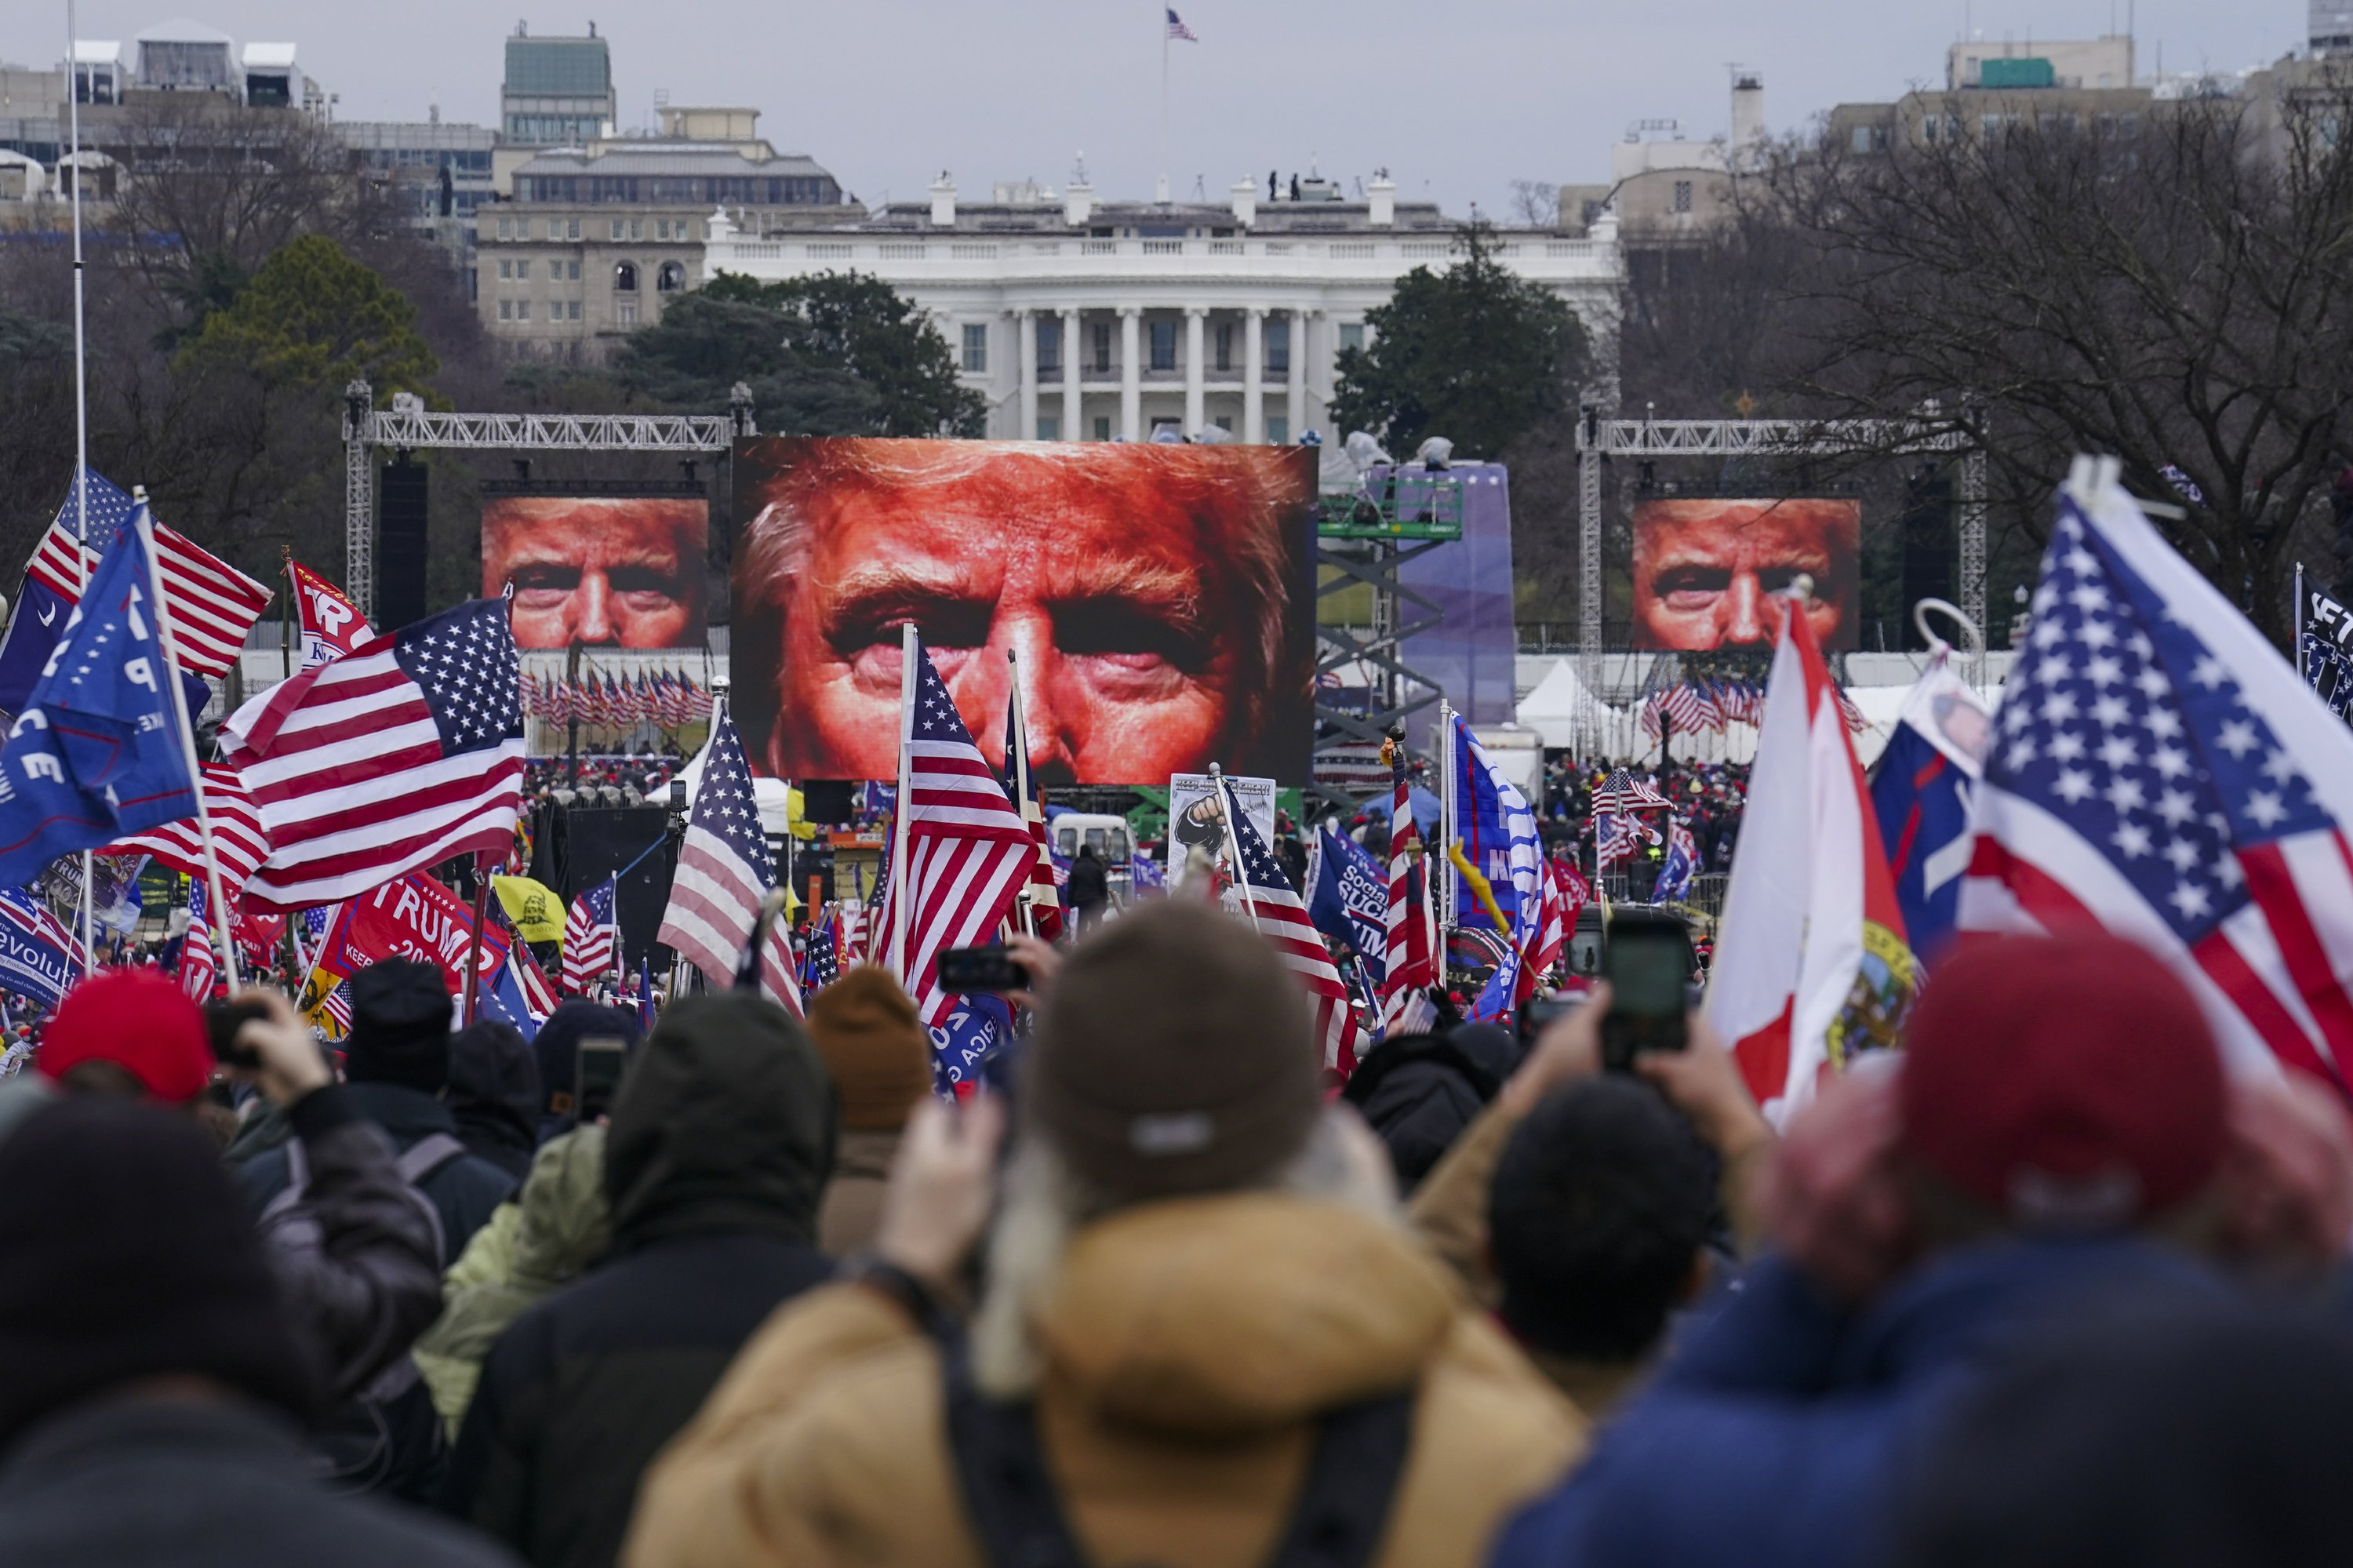 Mob at U.S. Capitol encouraged by online conspiracy theories